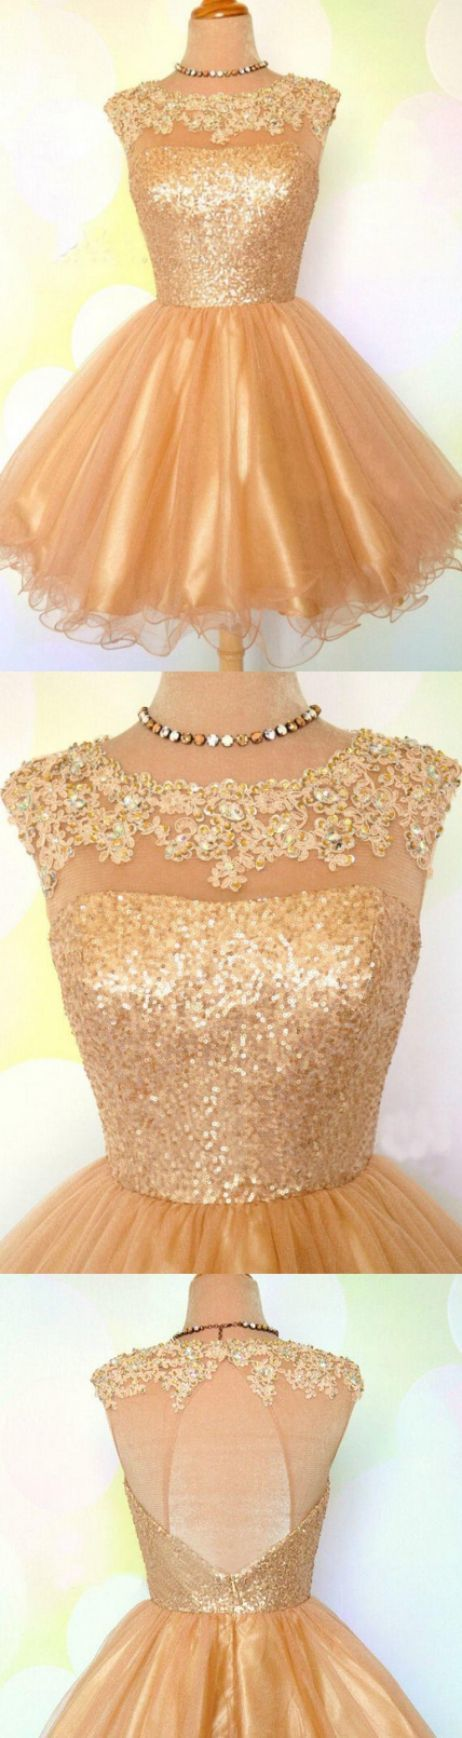 Princess Homecoming Dresses, Gold Homecoming Dresses, Short Prom Dresses With